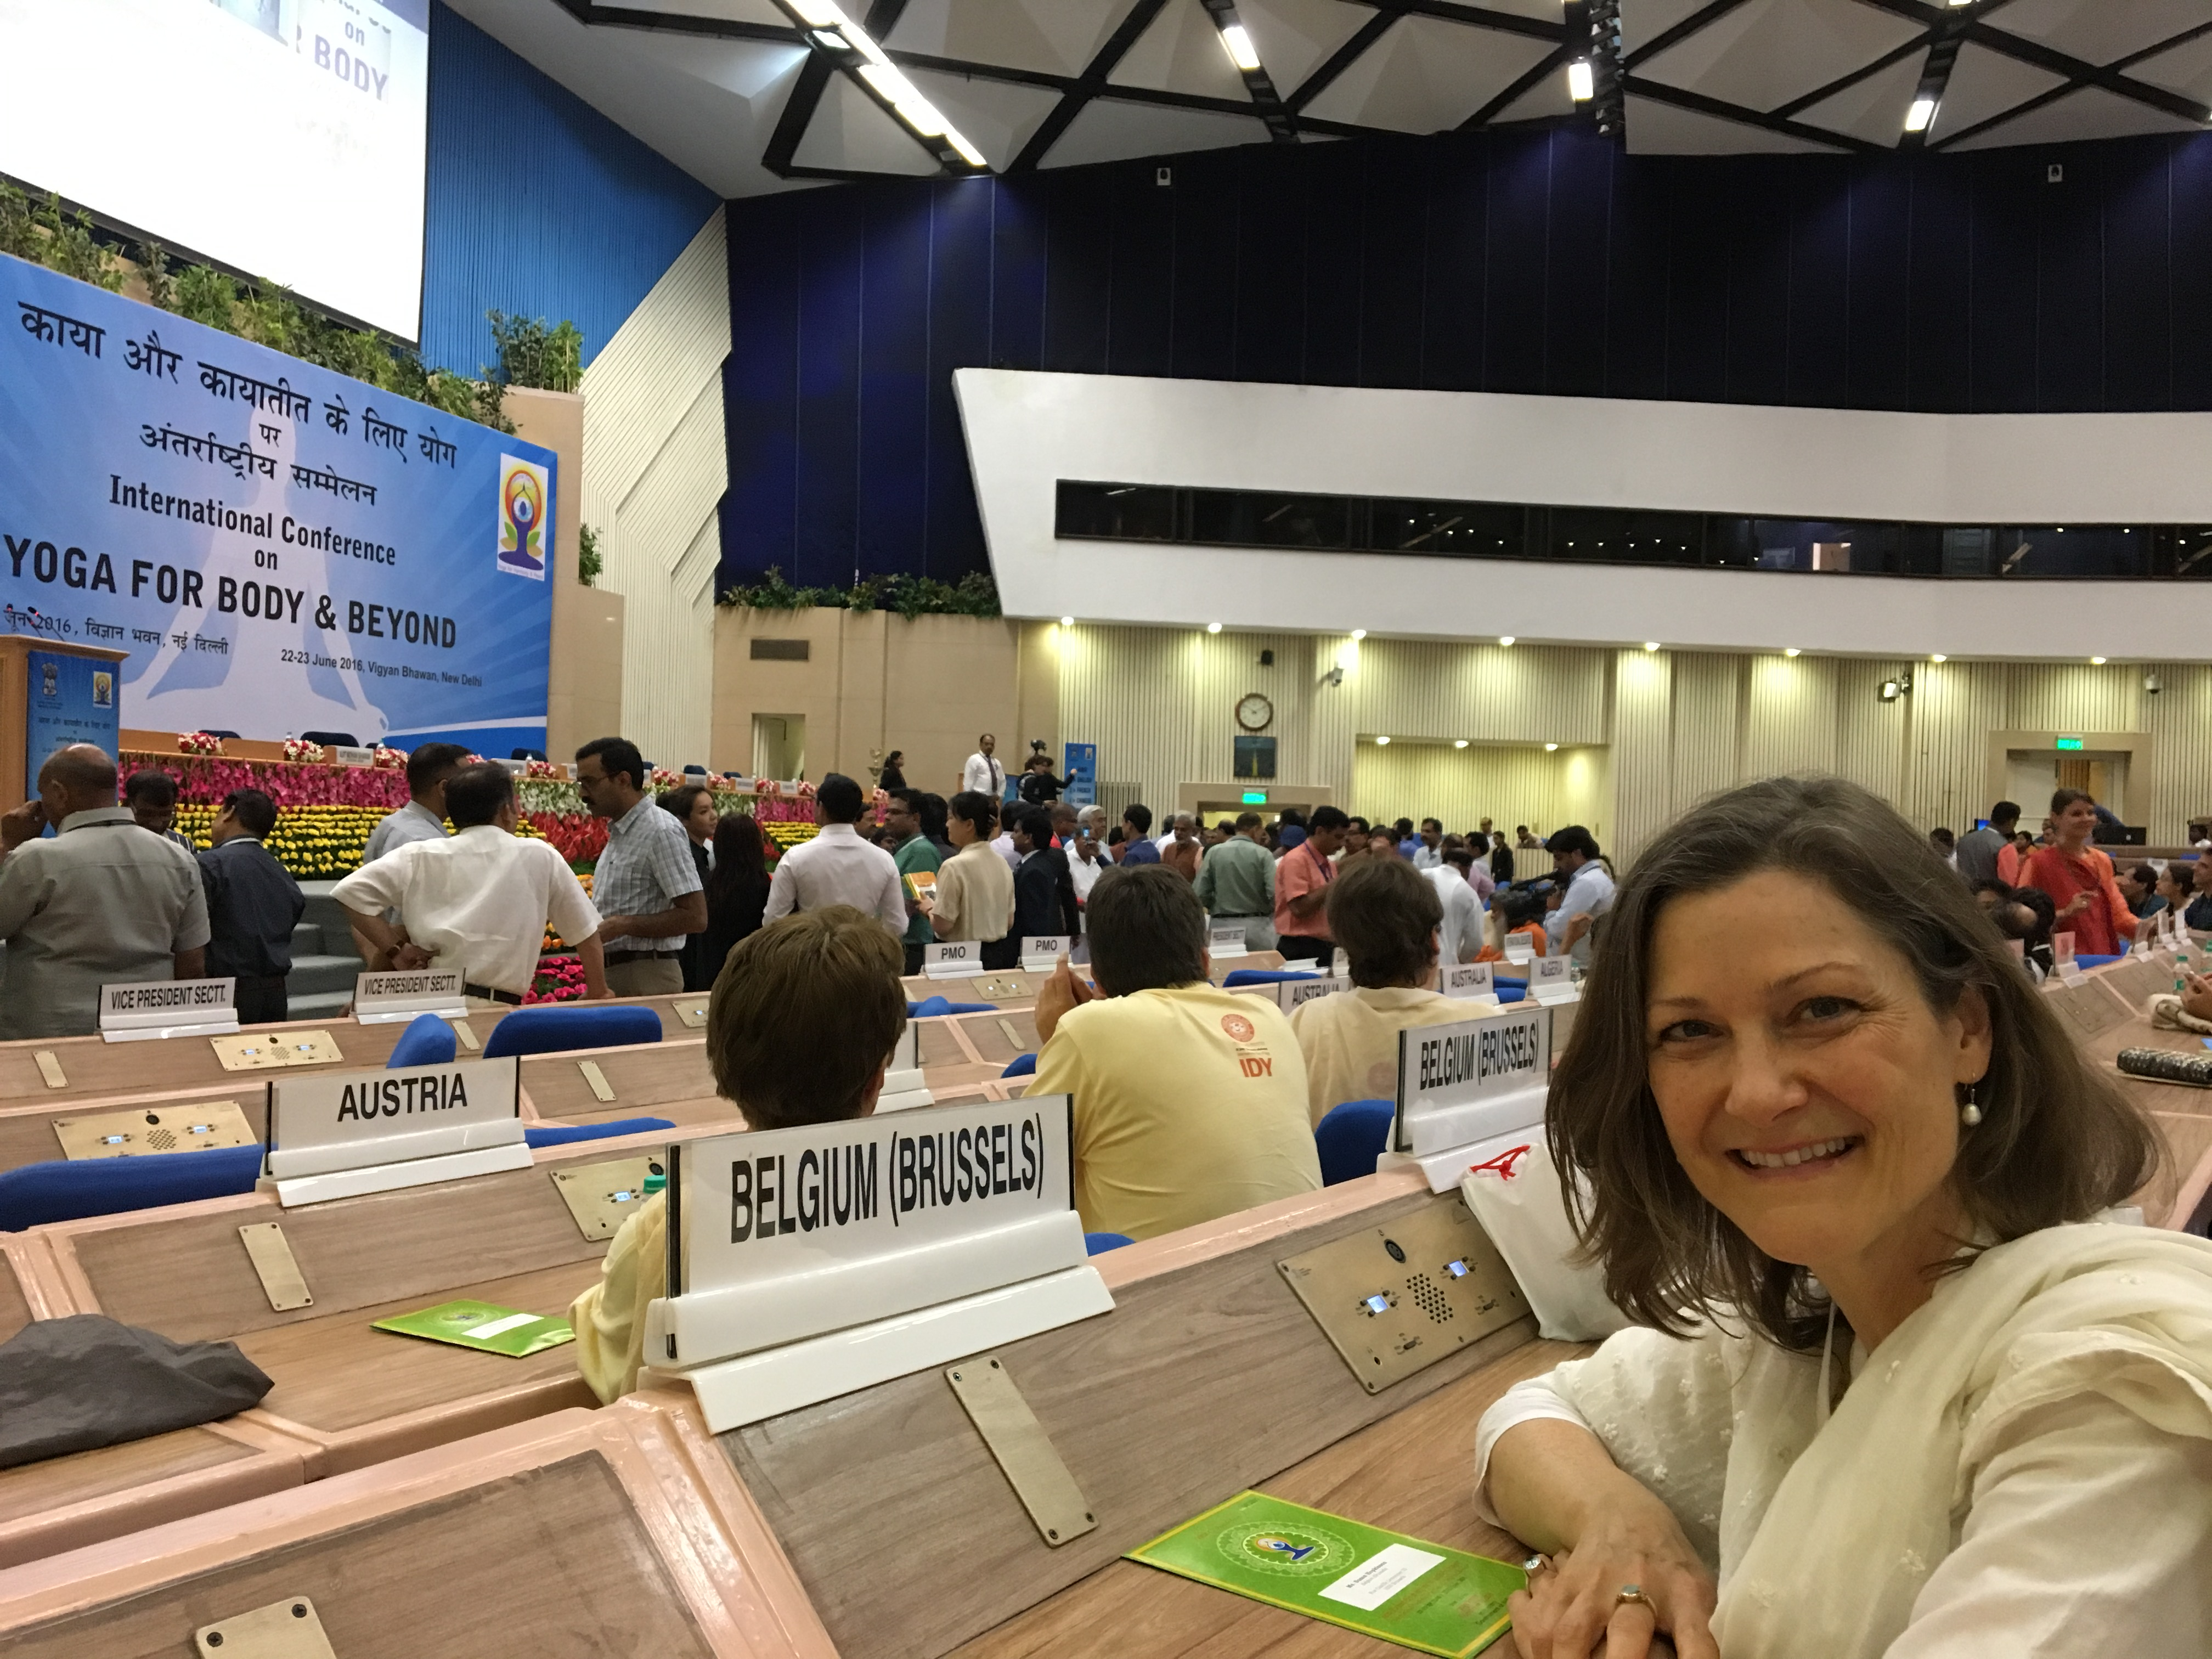 The Second International Yoga Conference in Delhi, India